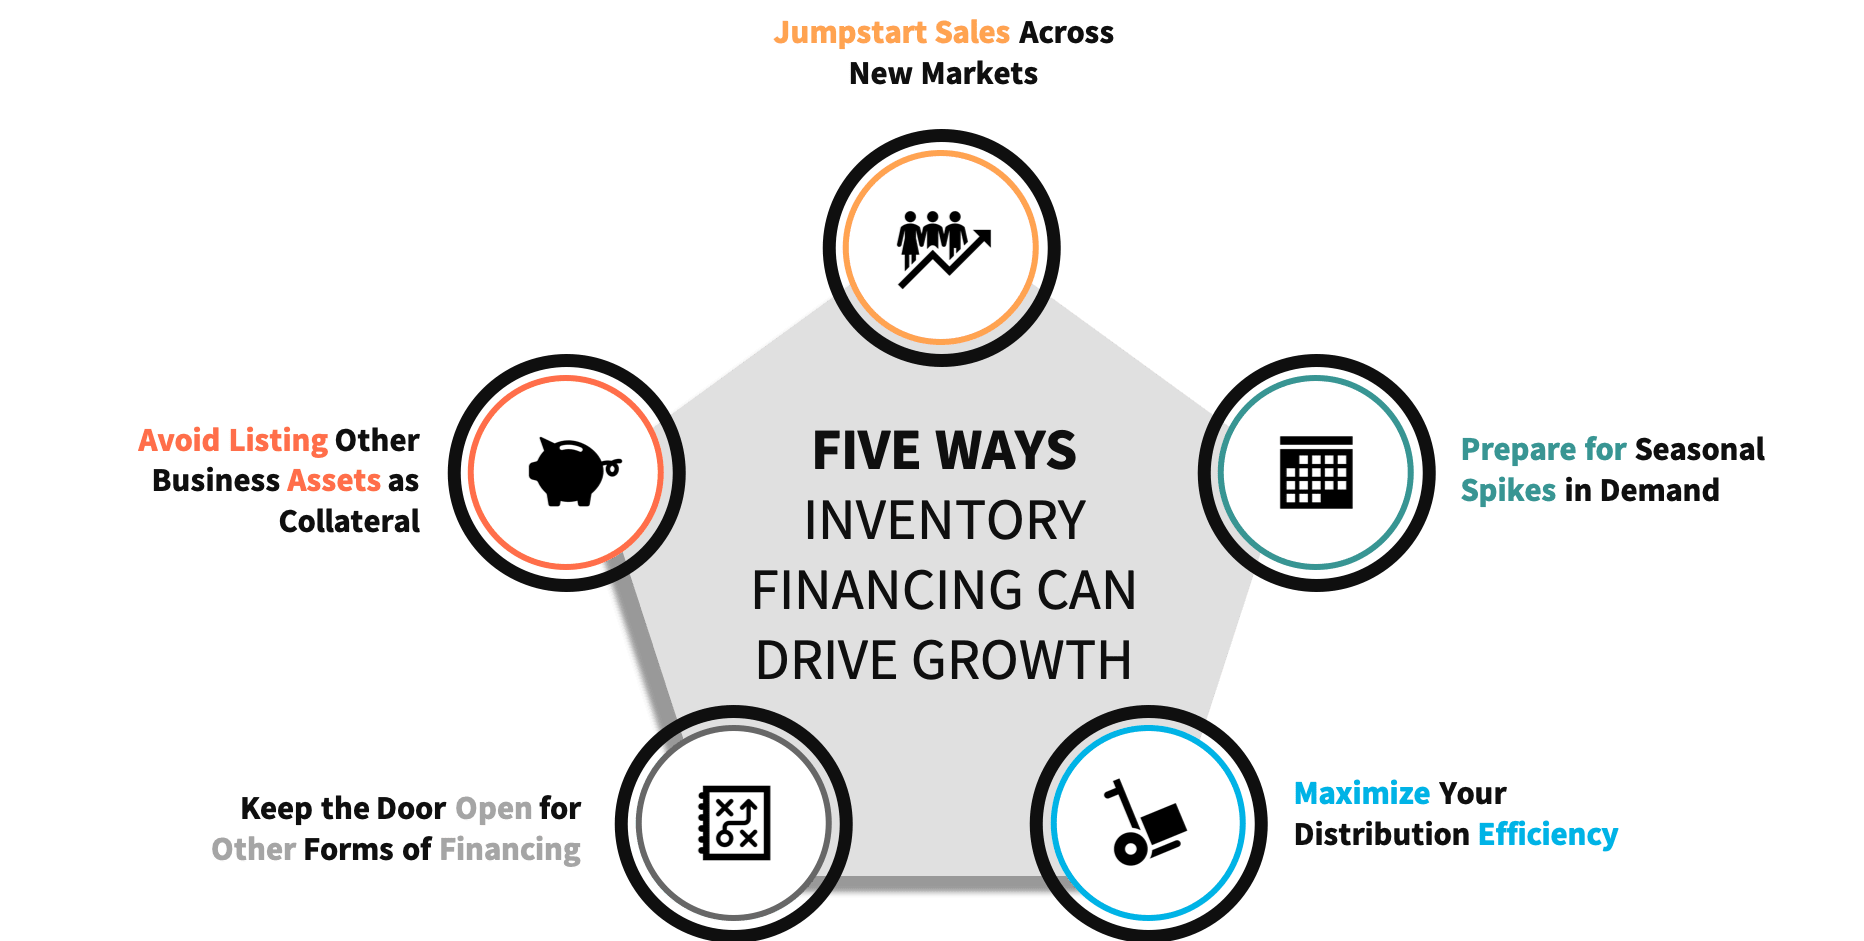 Five ways that inventory financing helps businesses grow